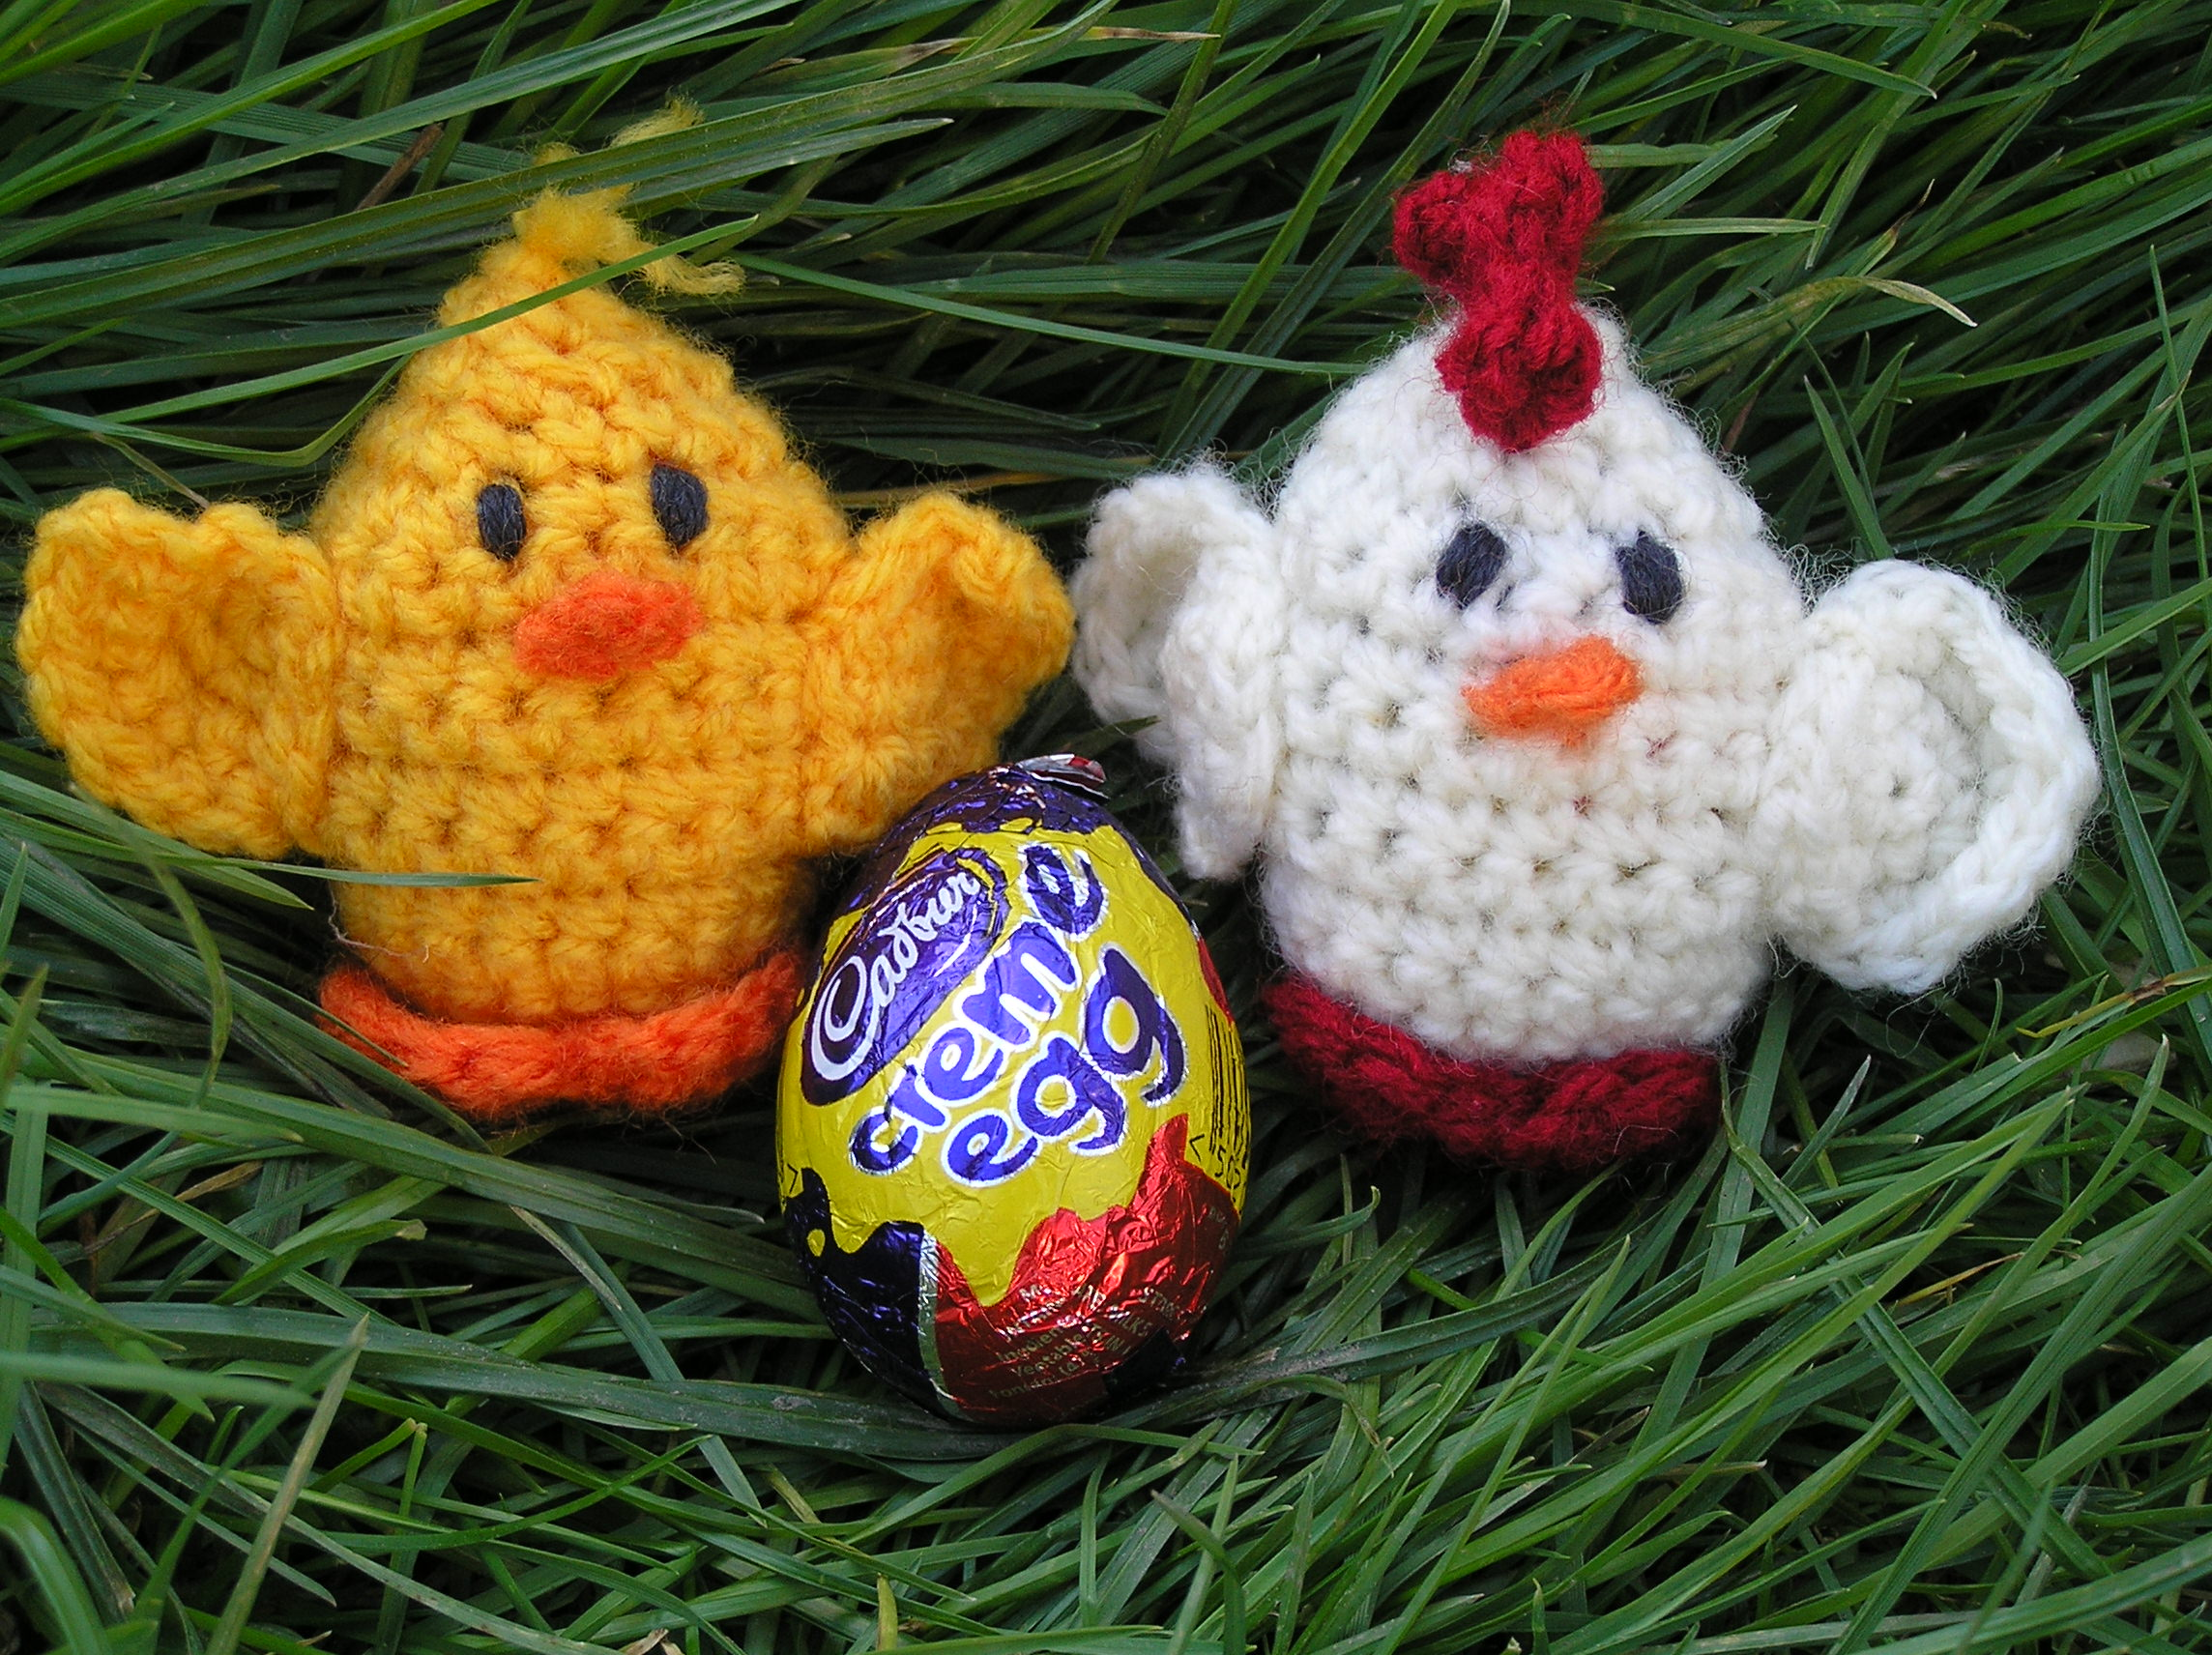 Easter Egg Crochet Pattern - Free Crochet Pattern Courtesy of